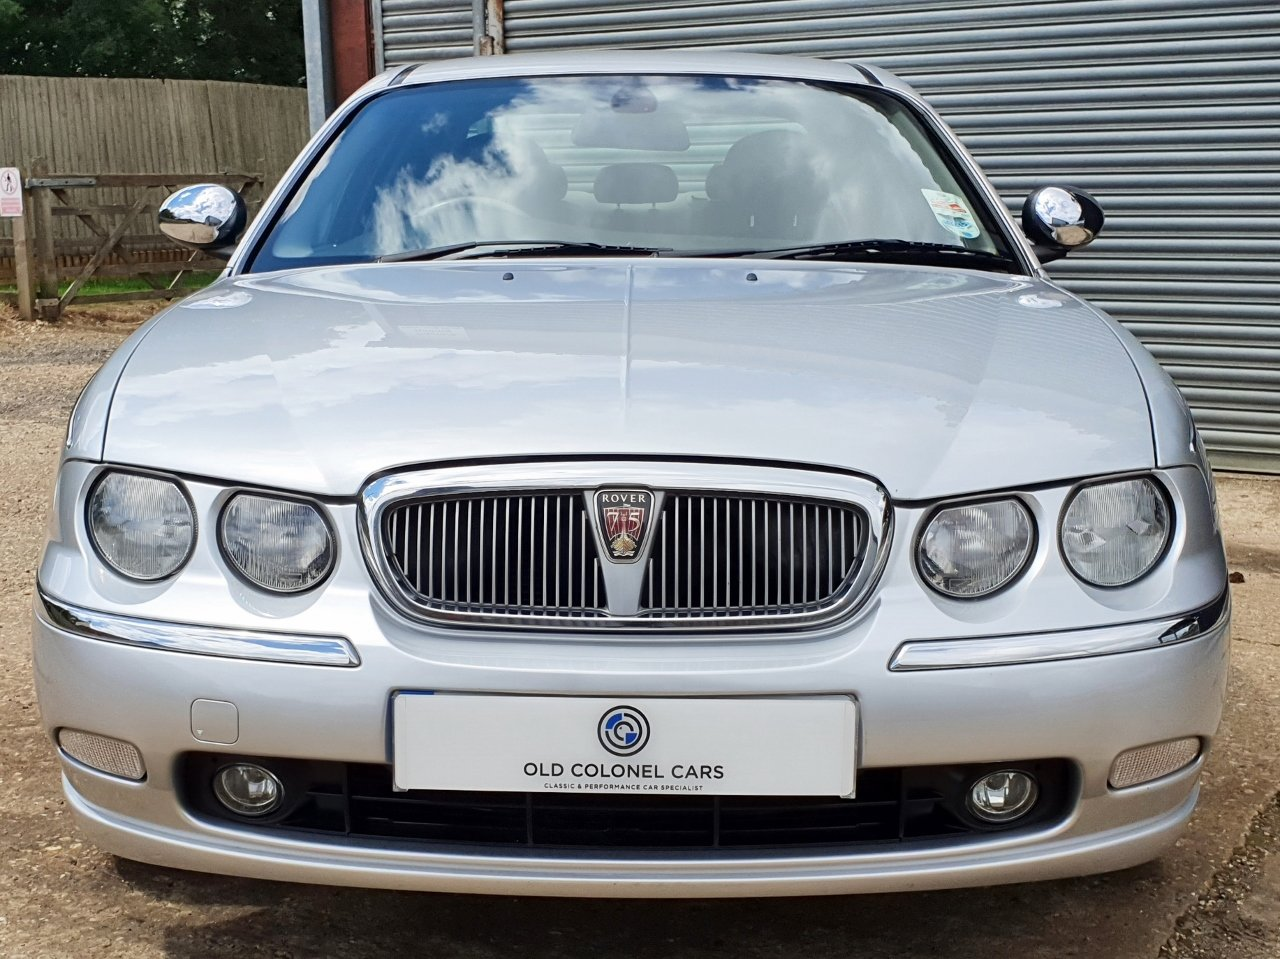 2003 ONLY 34,000 Miles - Rover 75 Connoisseur SE 2.5 V6 - 1 Owner SOLD (picture 1 of 10)